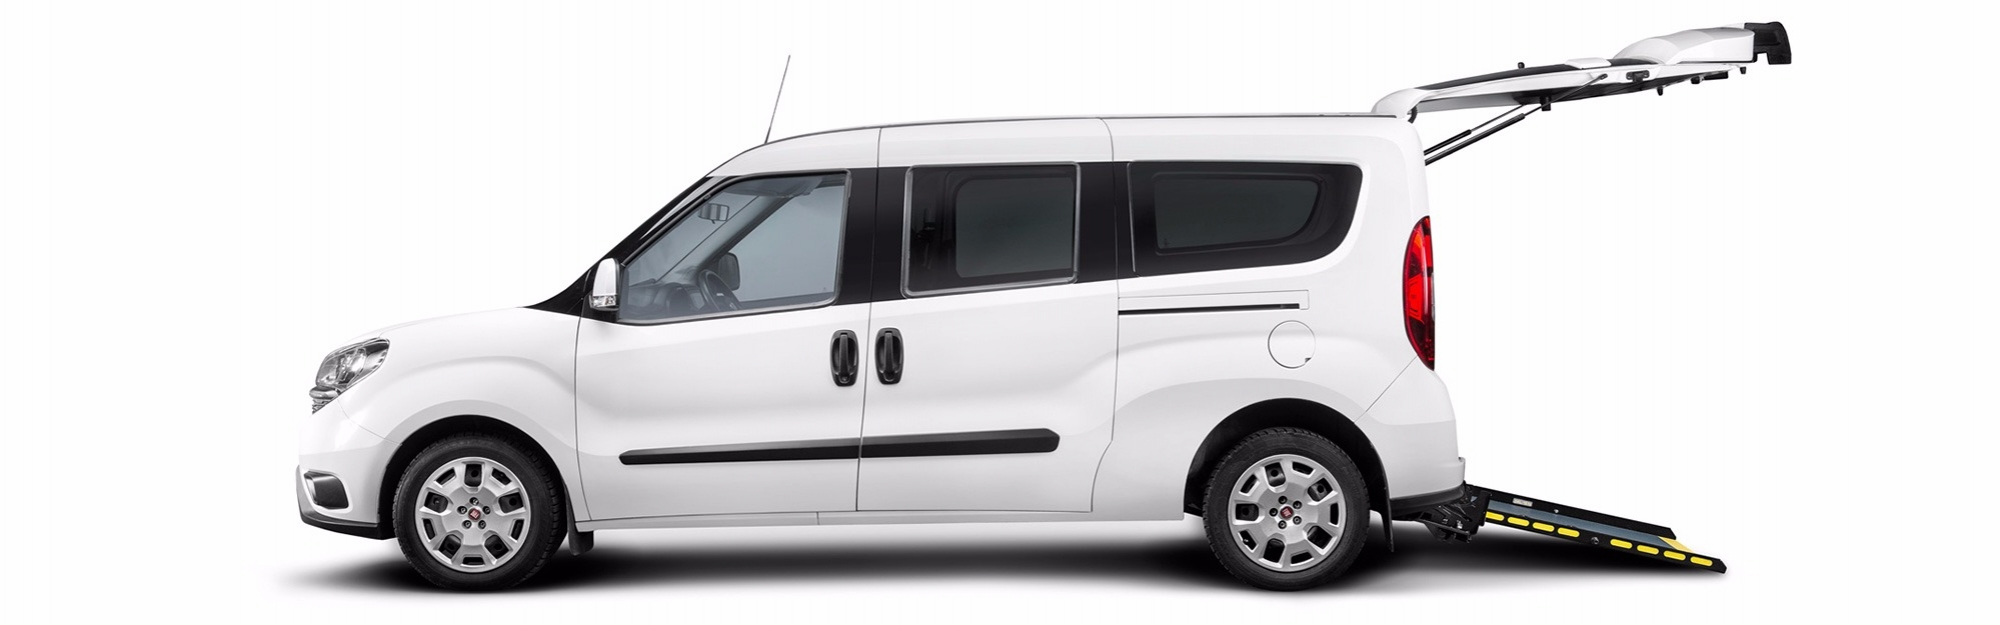 fiat doblo maxi. Black Bedroom Furniture Sets. Home Design Ideas